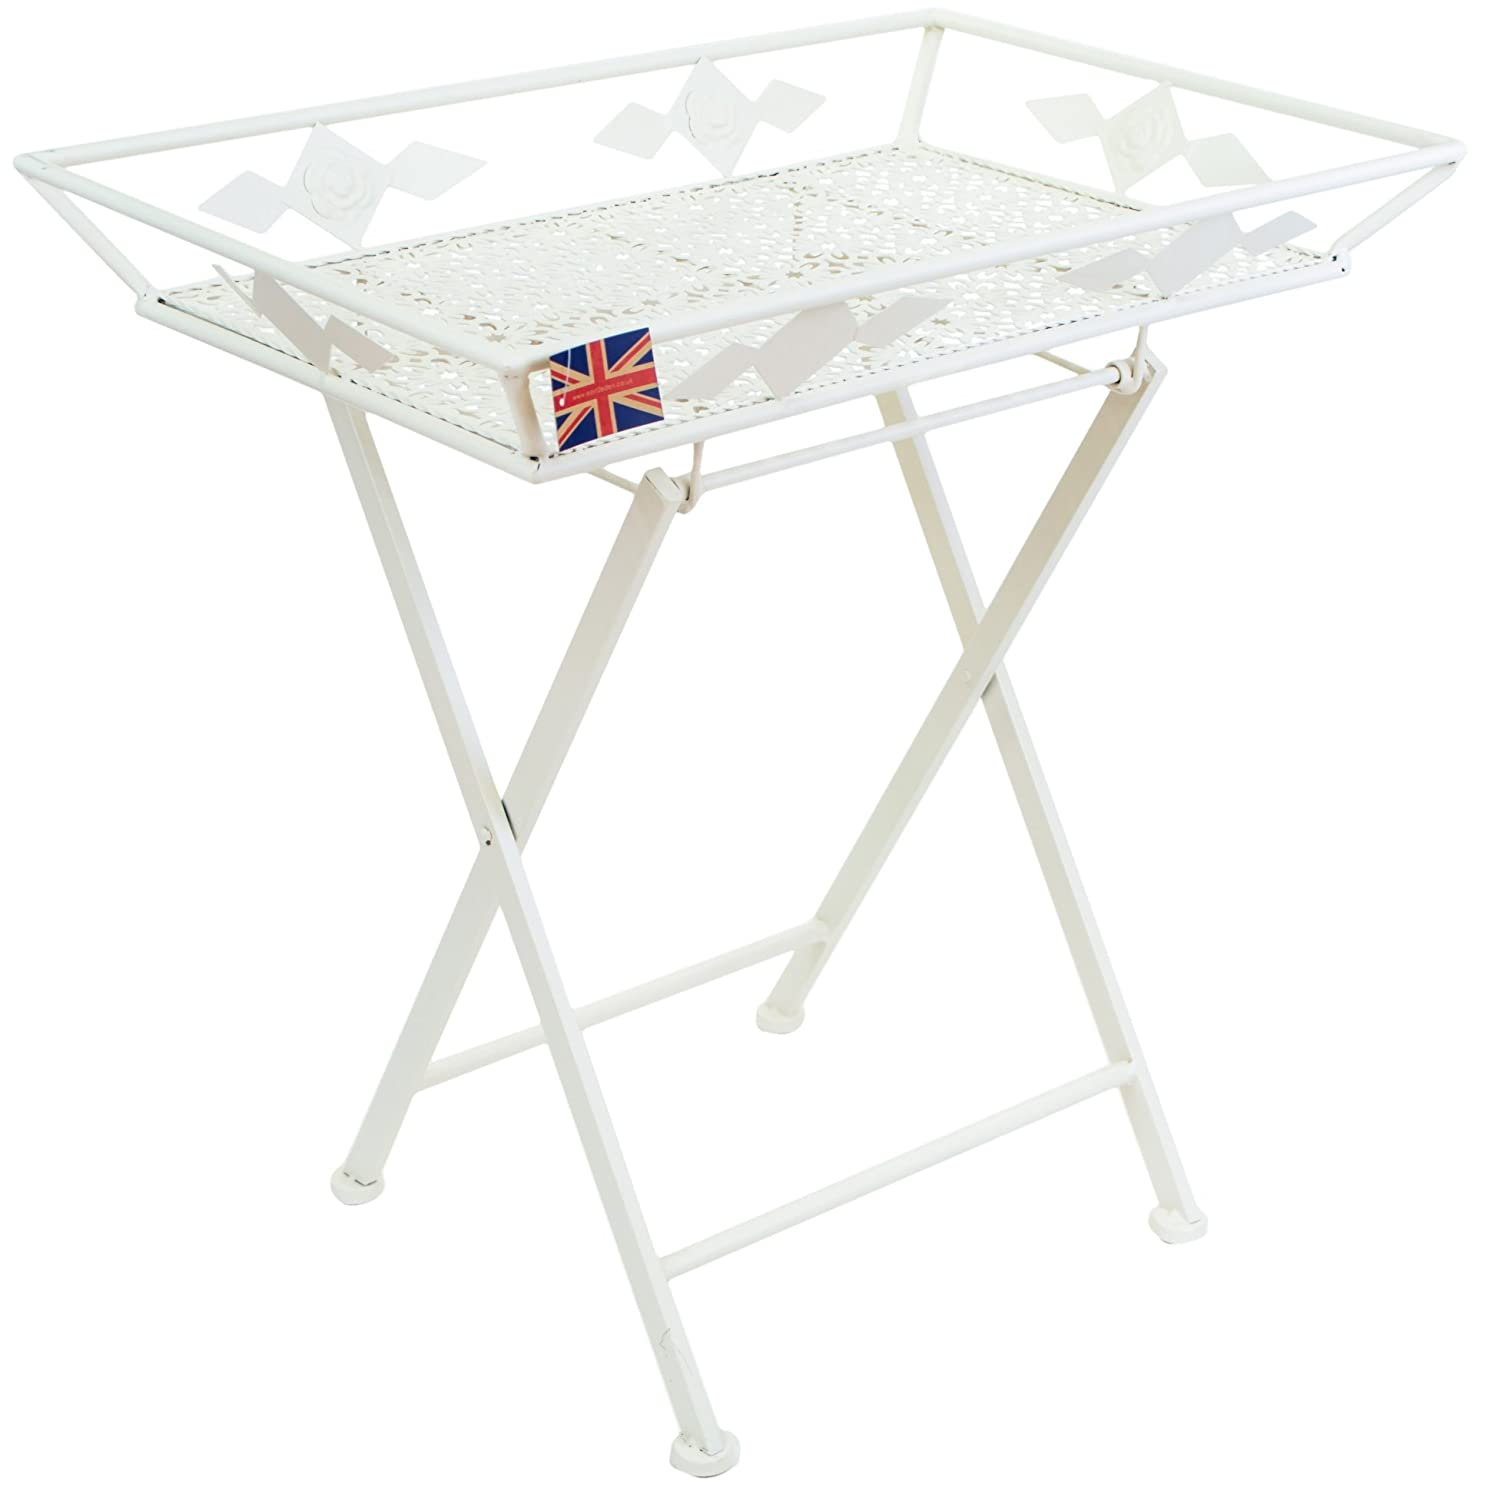 East2eden Vintage Retro Cream Metal Butlers Butleru0027s Serving Garden Tray  Table Stand: Amazon.co.uk: Kitchen U0026 Home